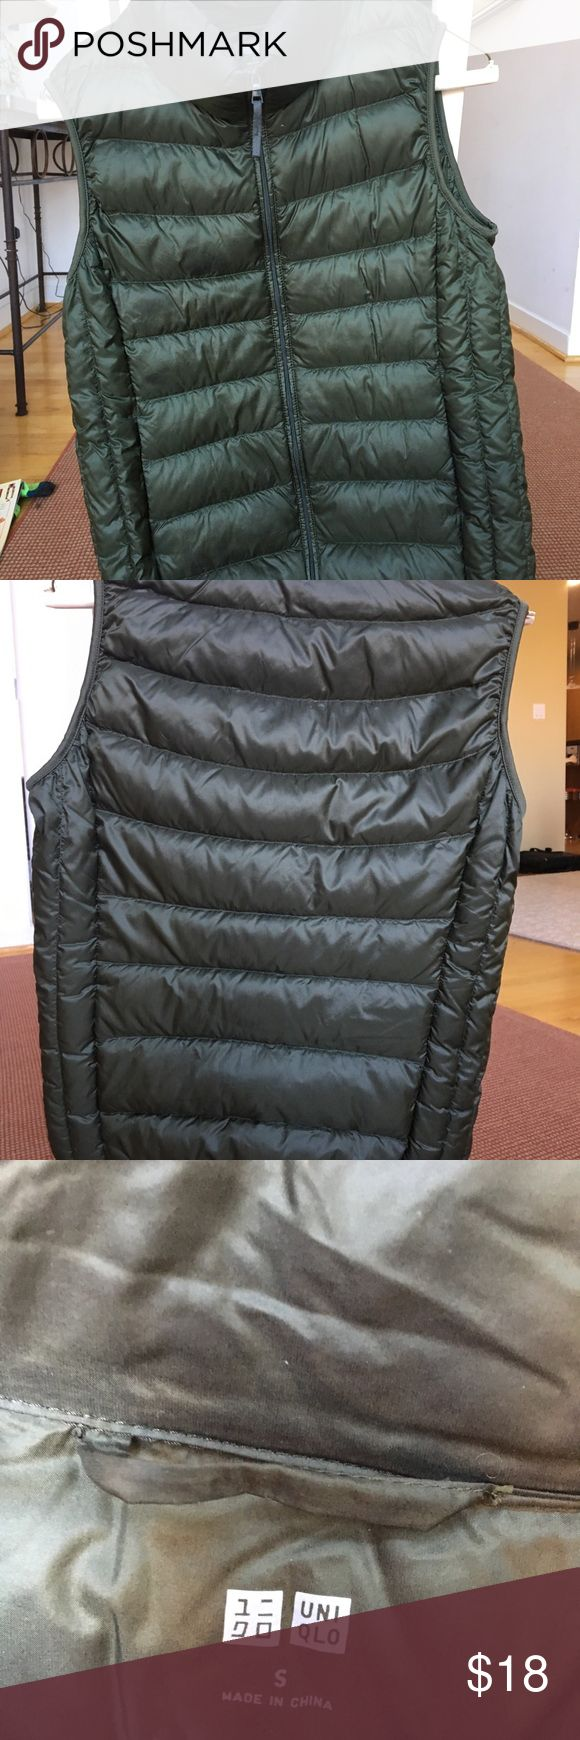 Gorgeous and warm Uniqlo vest, EUC Great vest and so warm!! Selling bc I got the same one in orange from PM. ENJOY the cold and look stylish! Uniqlo Jackets & Coats Vests